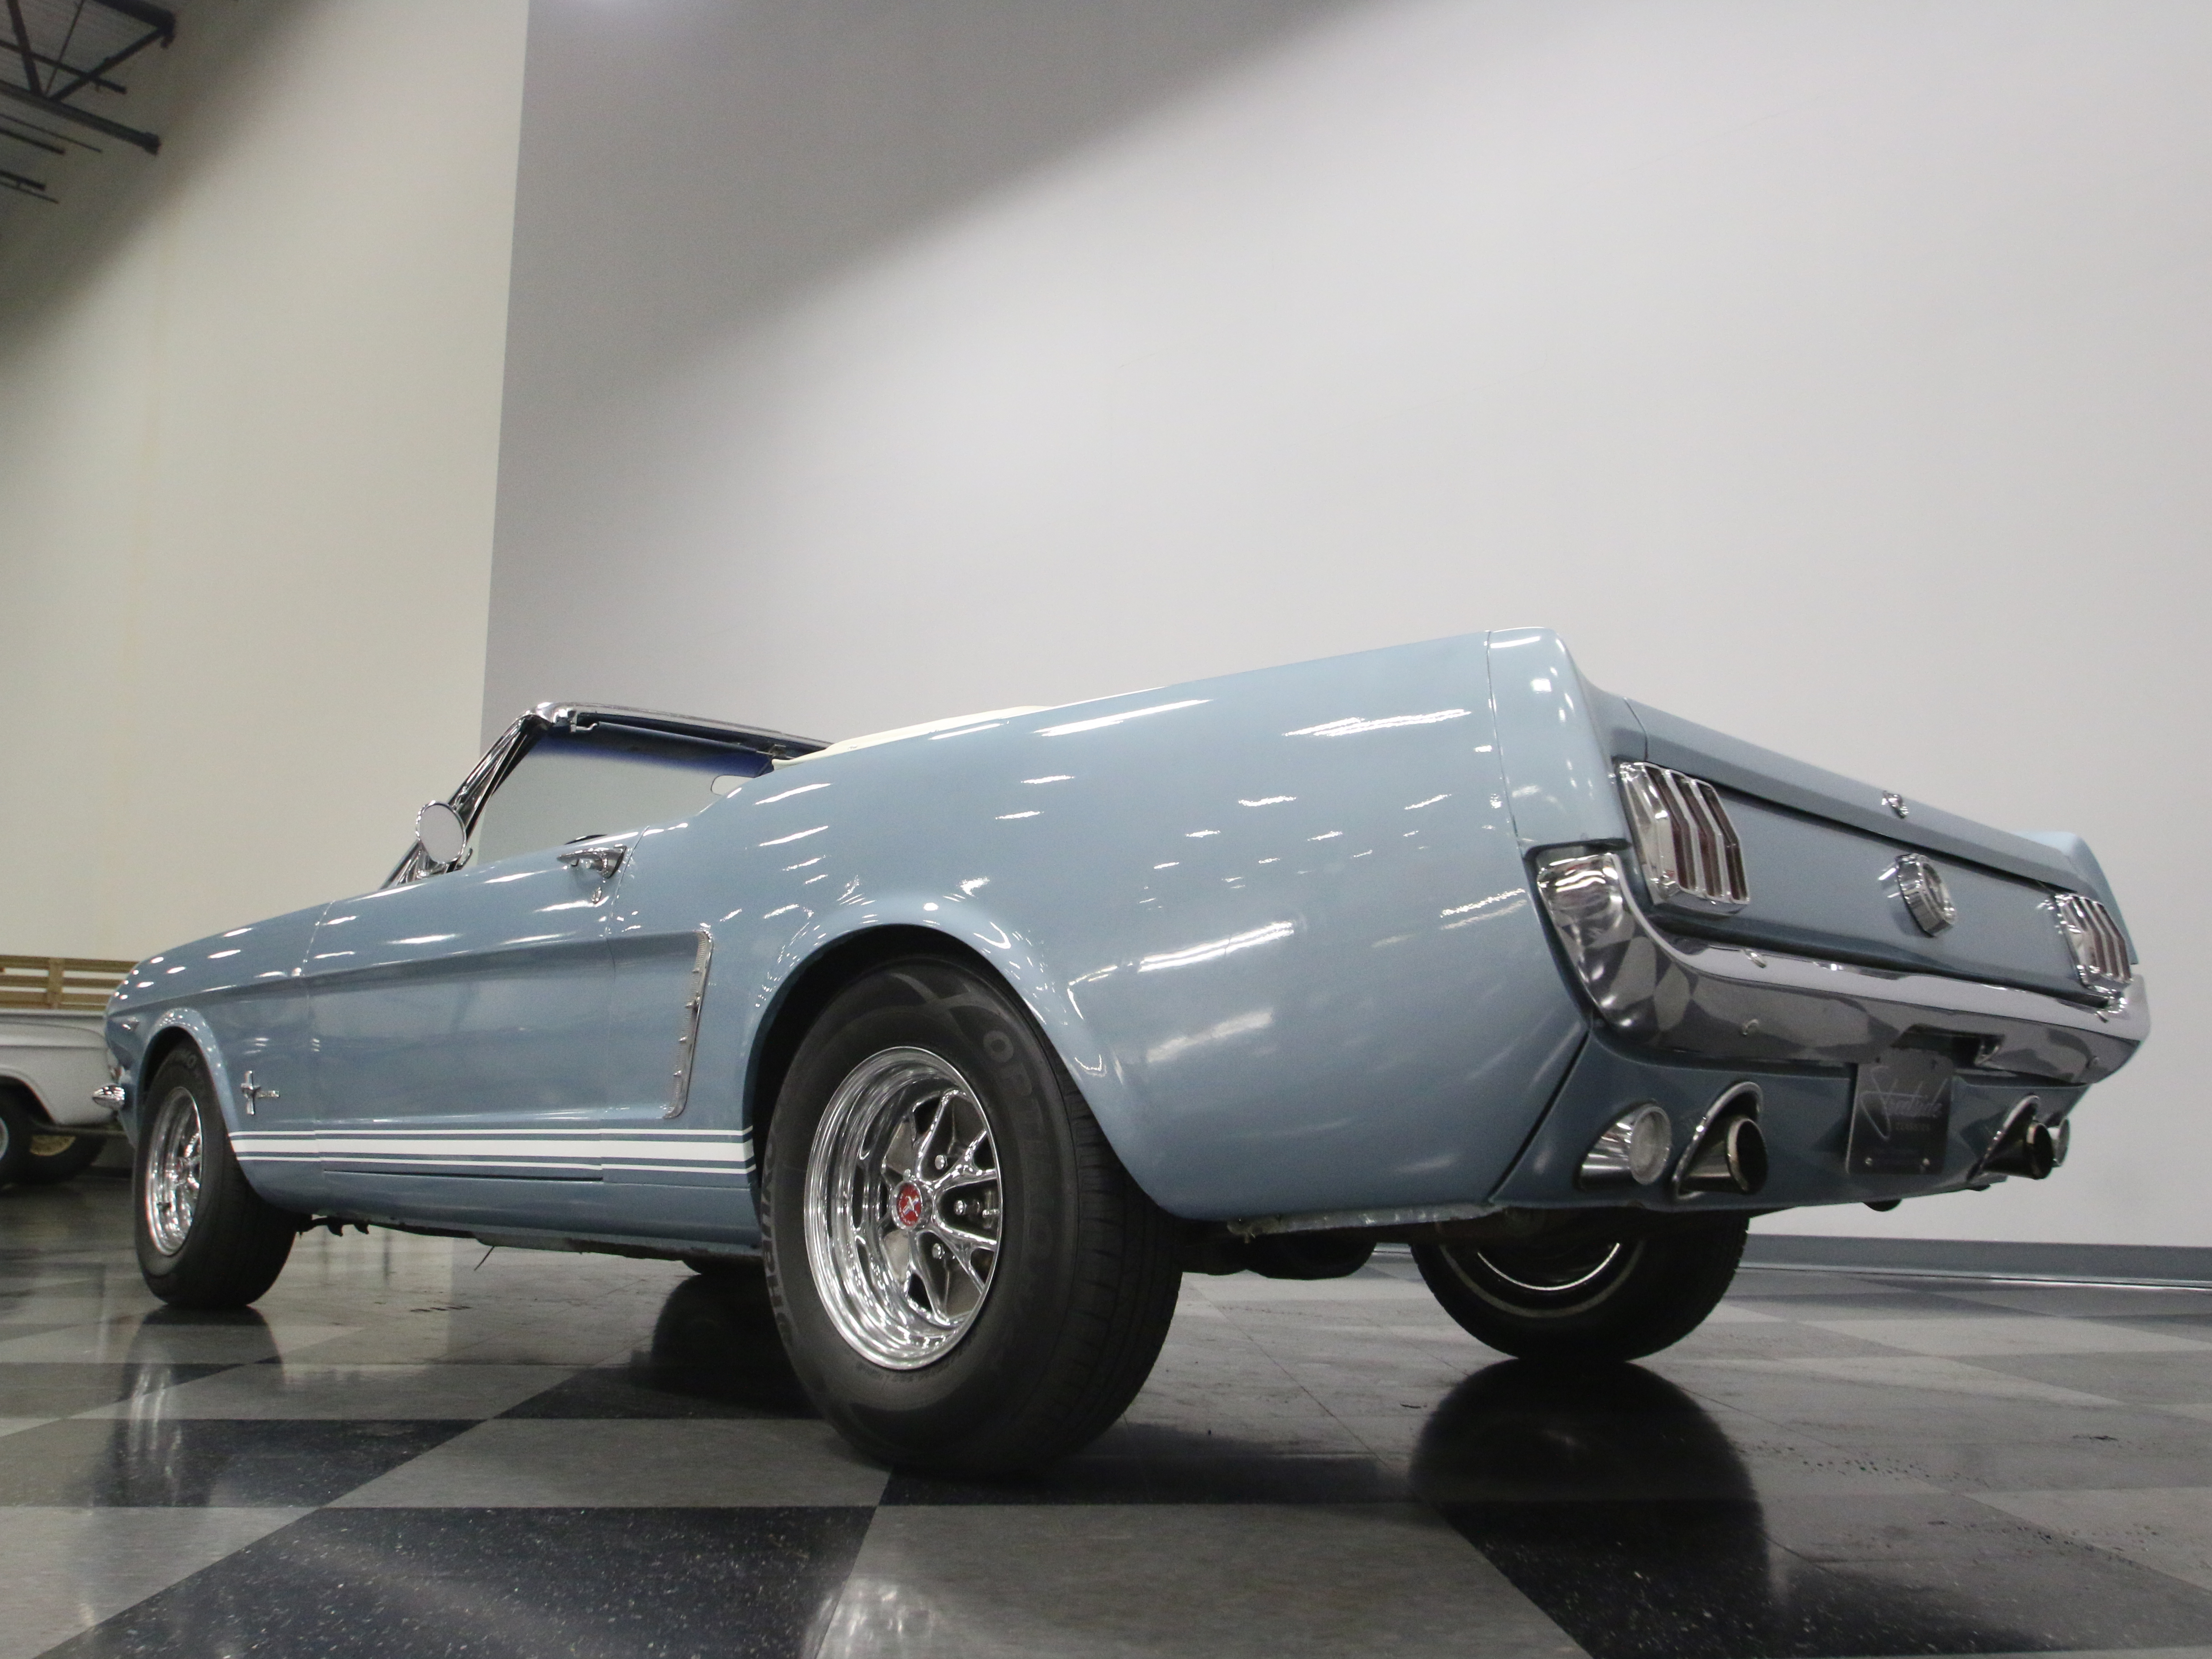 1965 Ford Mustang : NICE A-CODE 289 CONVERTIBLE, 4 SPEED MANUAL, GREAT COLOR COMBO, FRONT DISCS!